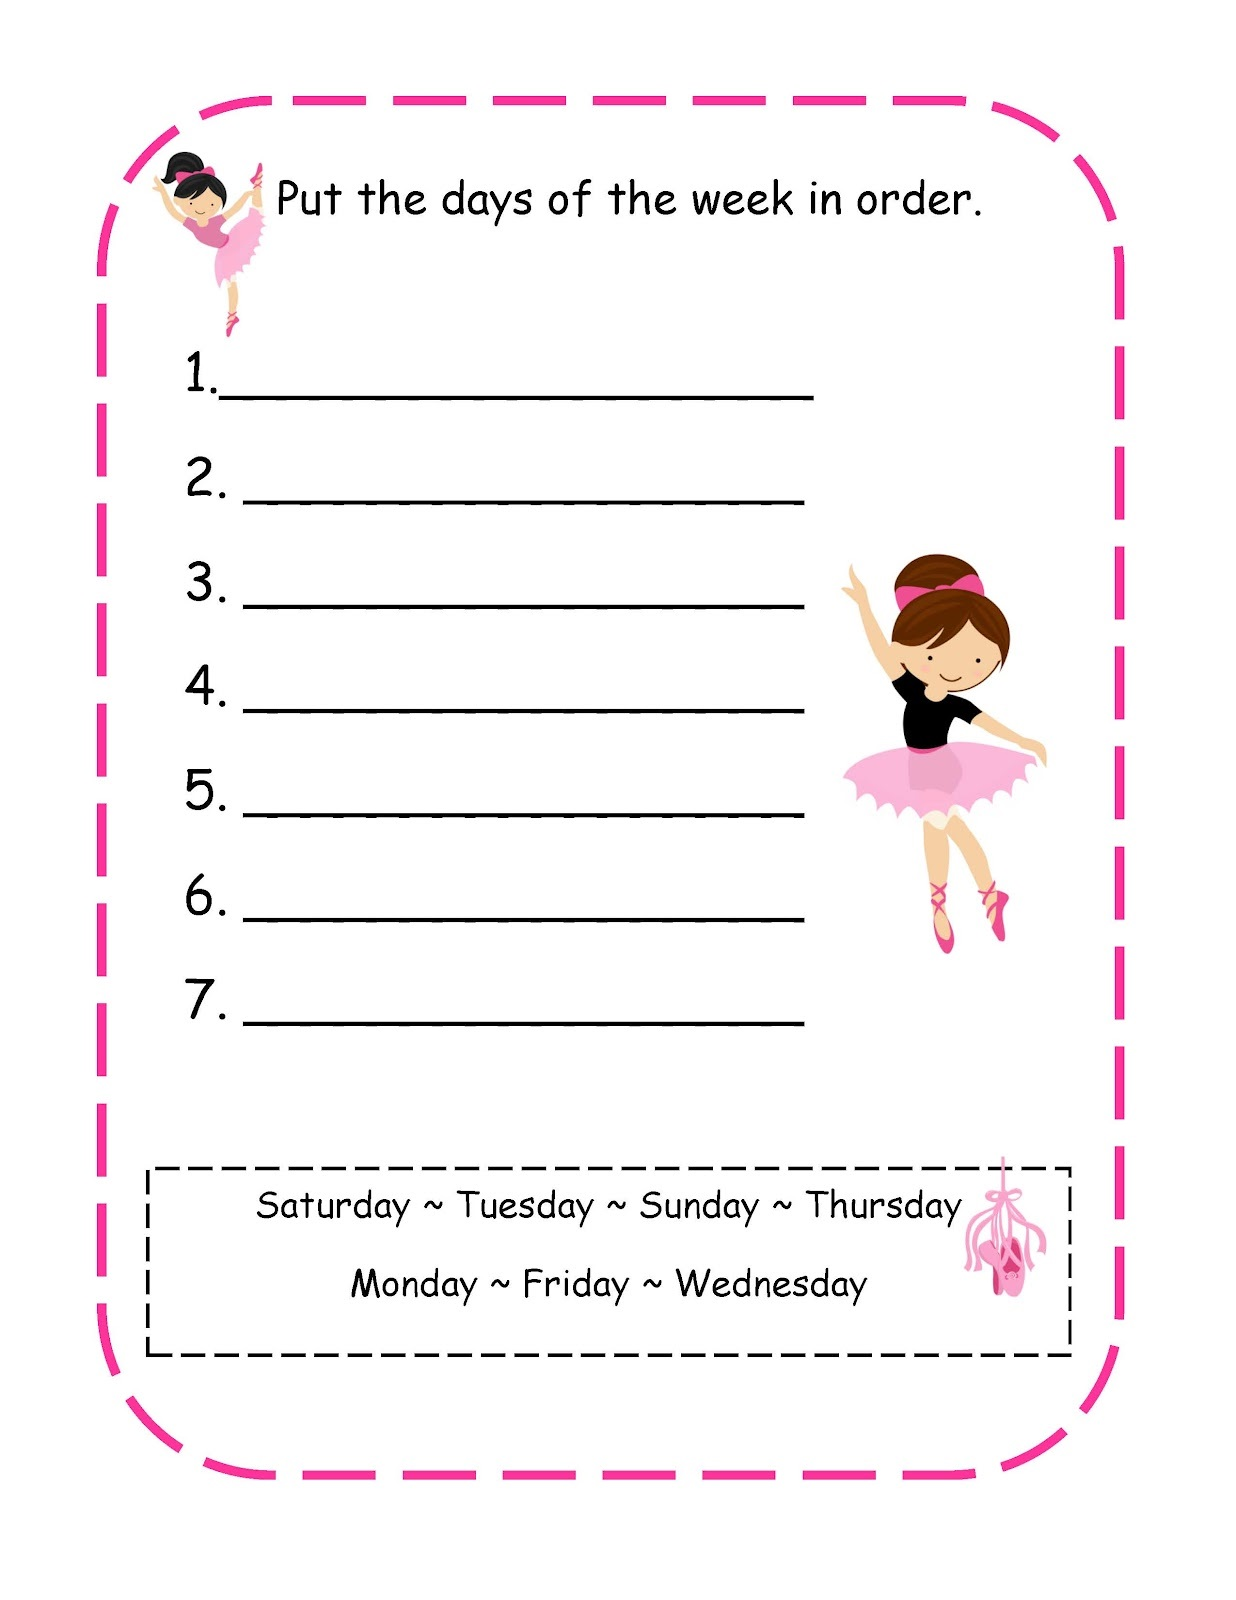 worksheets for days of the week arranging